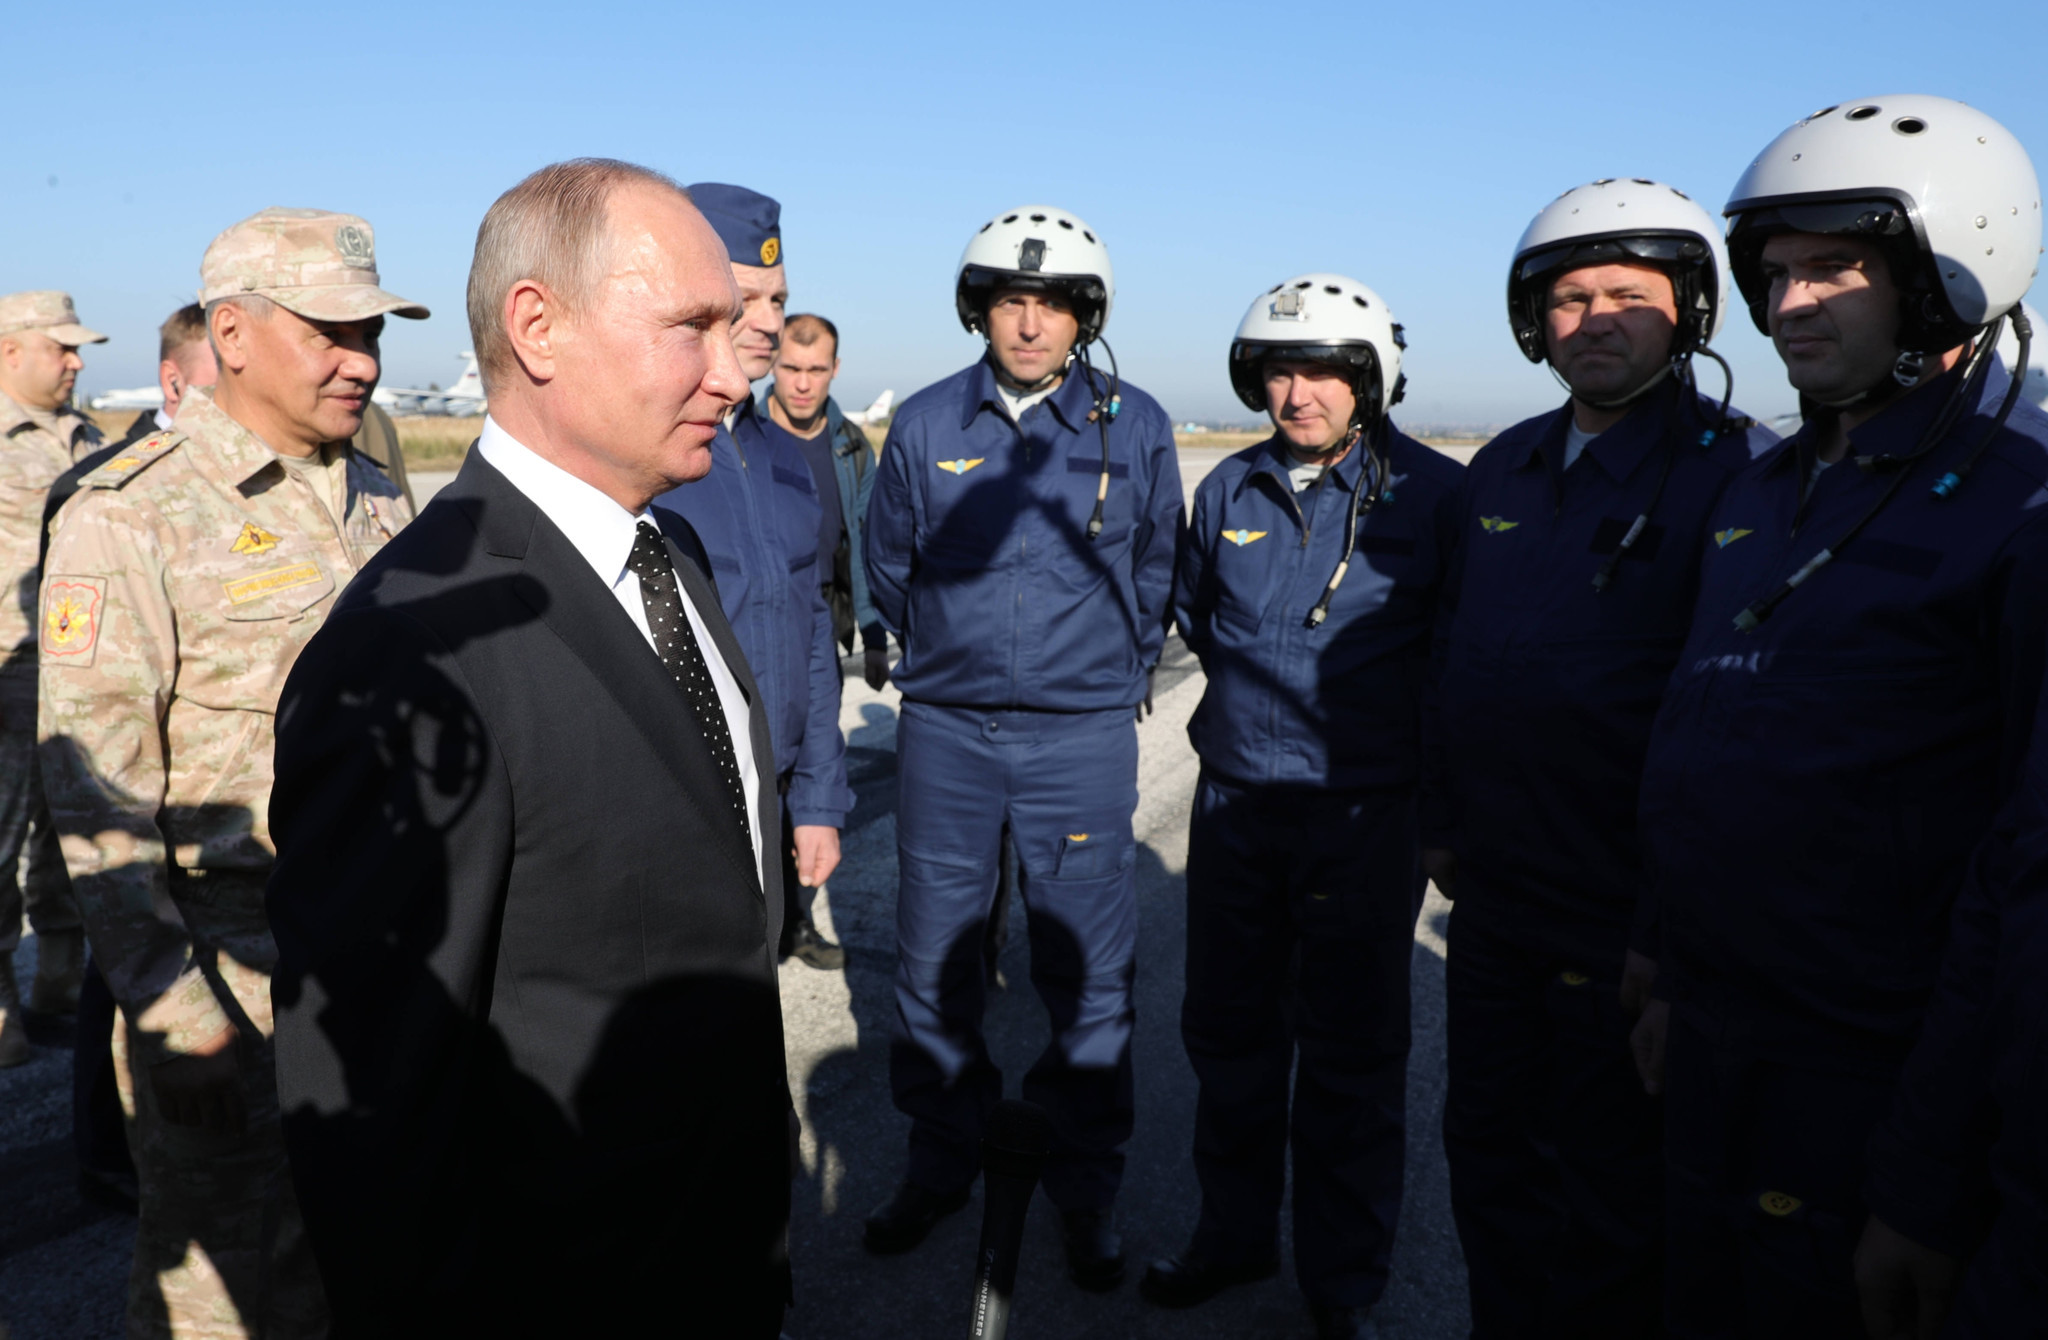 A confident and upbeat Putin goes on Mideast 'victory' tour (chicagotribune.com)